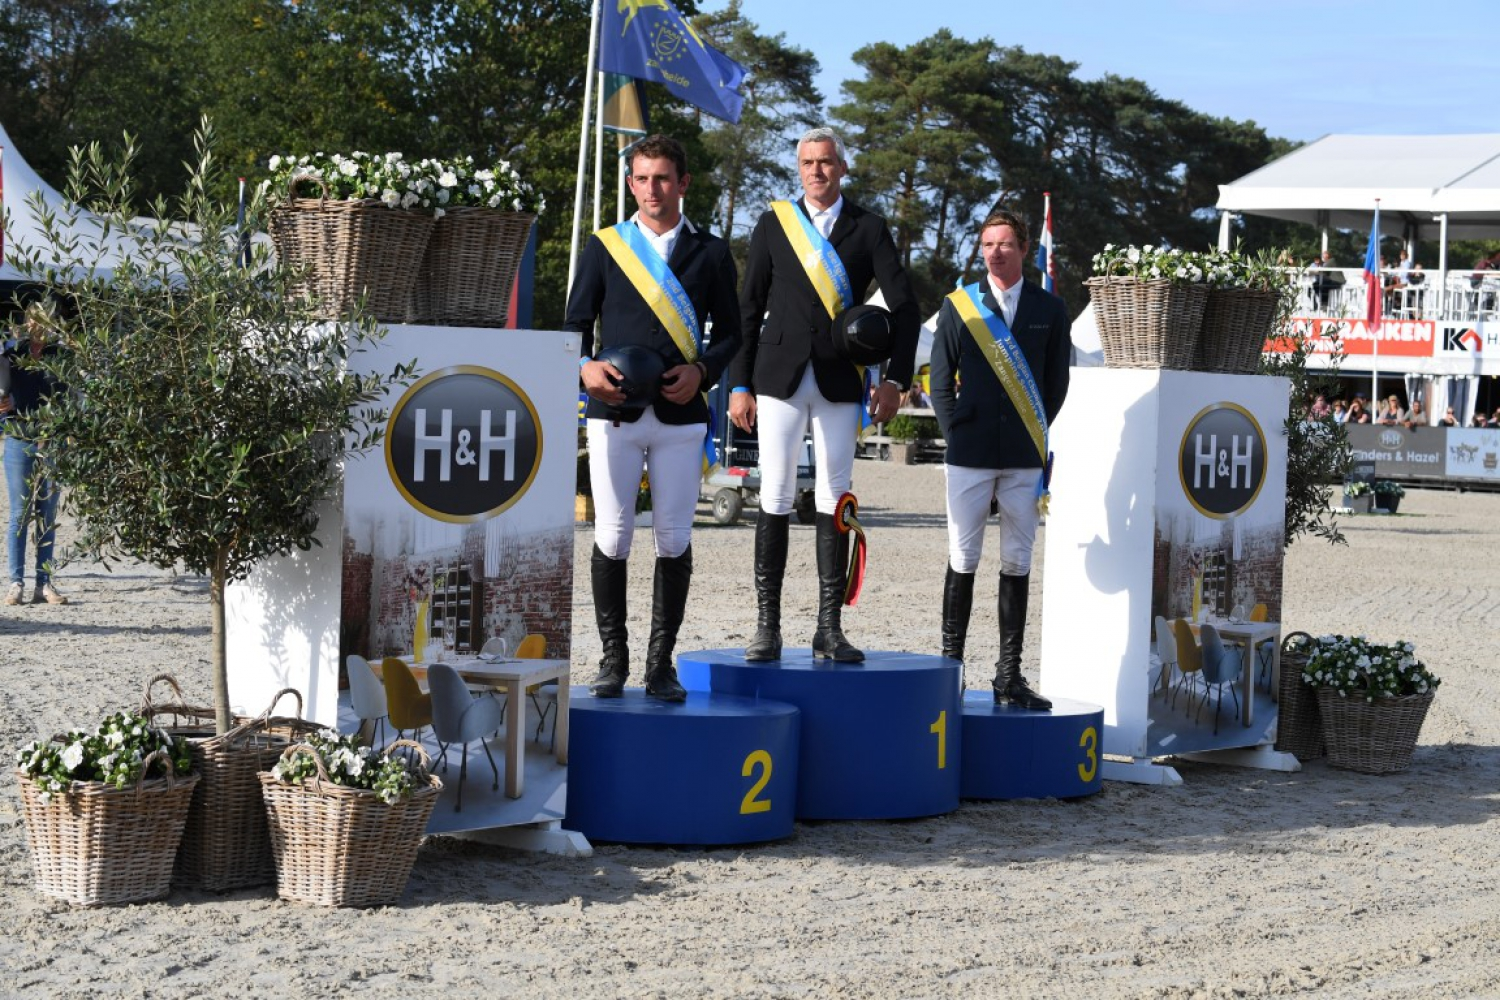 FEI / WBFSH World Breeding Jumping Championships for Young Horses 2018